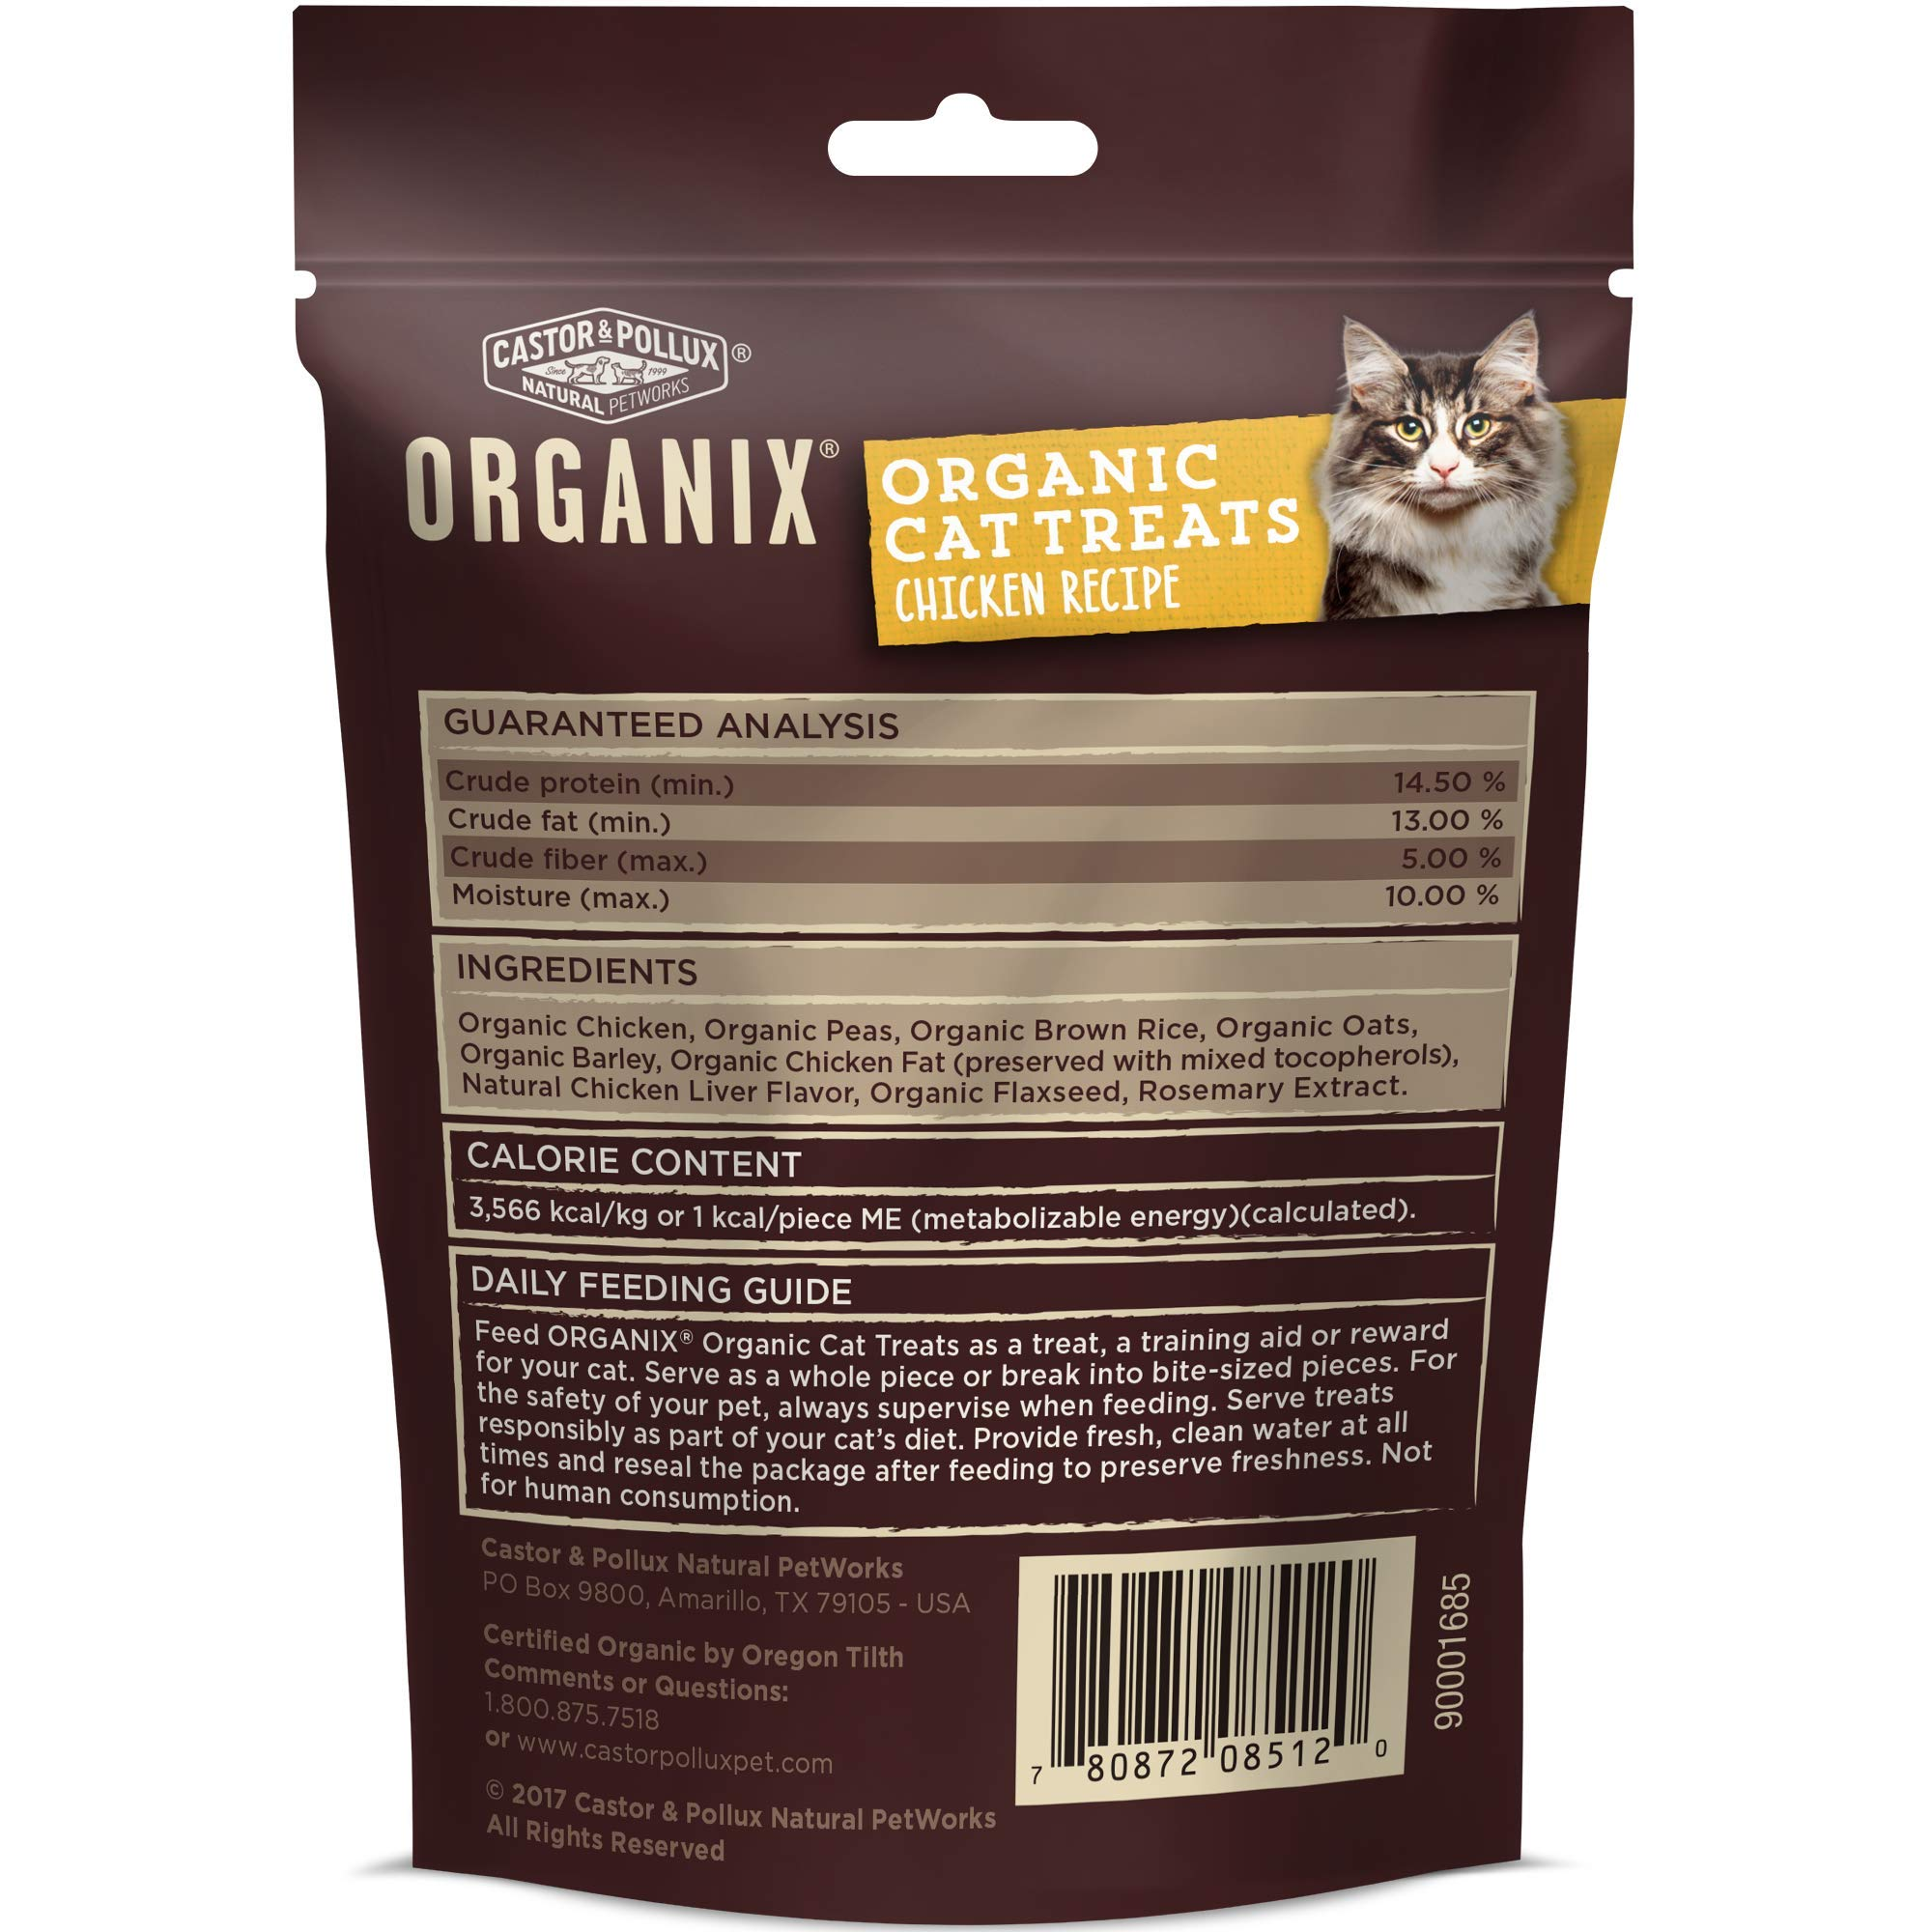 Castor & Pollux Organix Chicken Flavored Cat Treats, 2 Ounce Packages (Pack Of 12) by Castor & Pollux (Image #1)